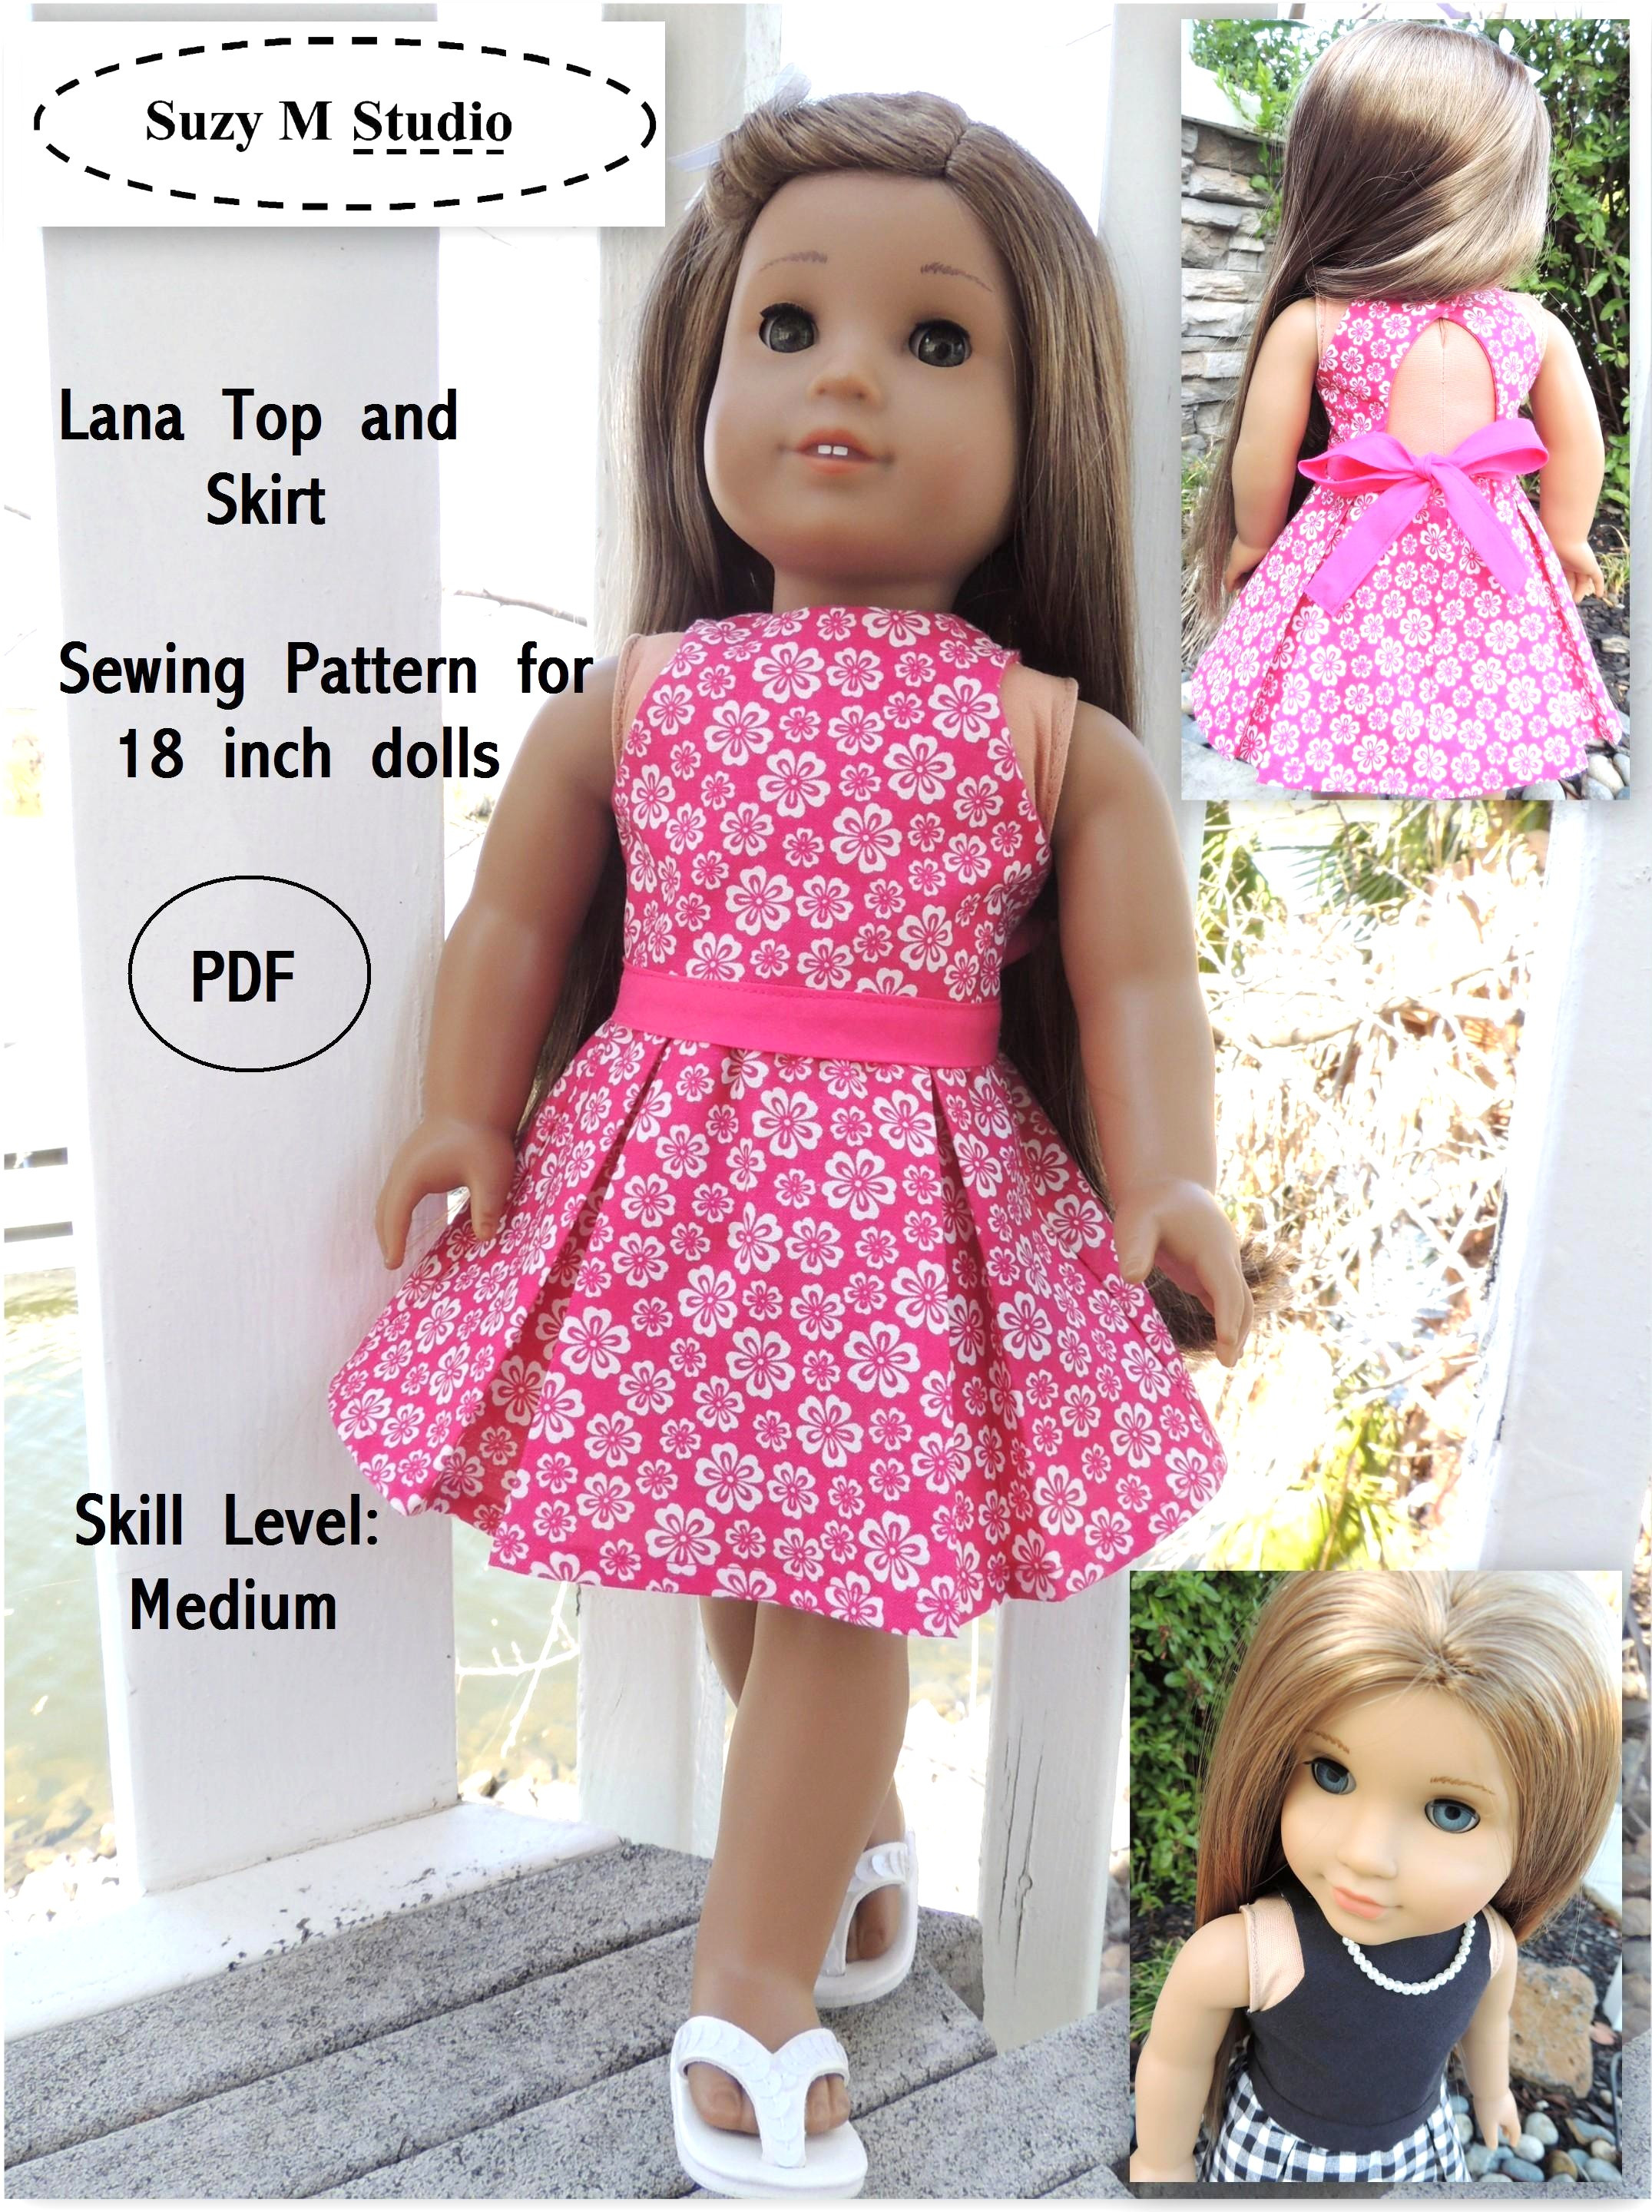 New American Girl Doll Clothing Suzymstudio American Girl Doll Patterns Of Delightful 40 Photos American Girl Doll Patterns